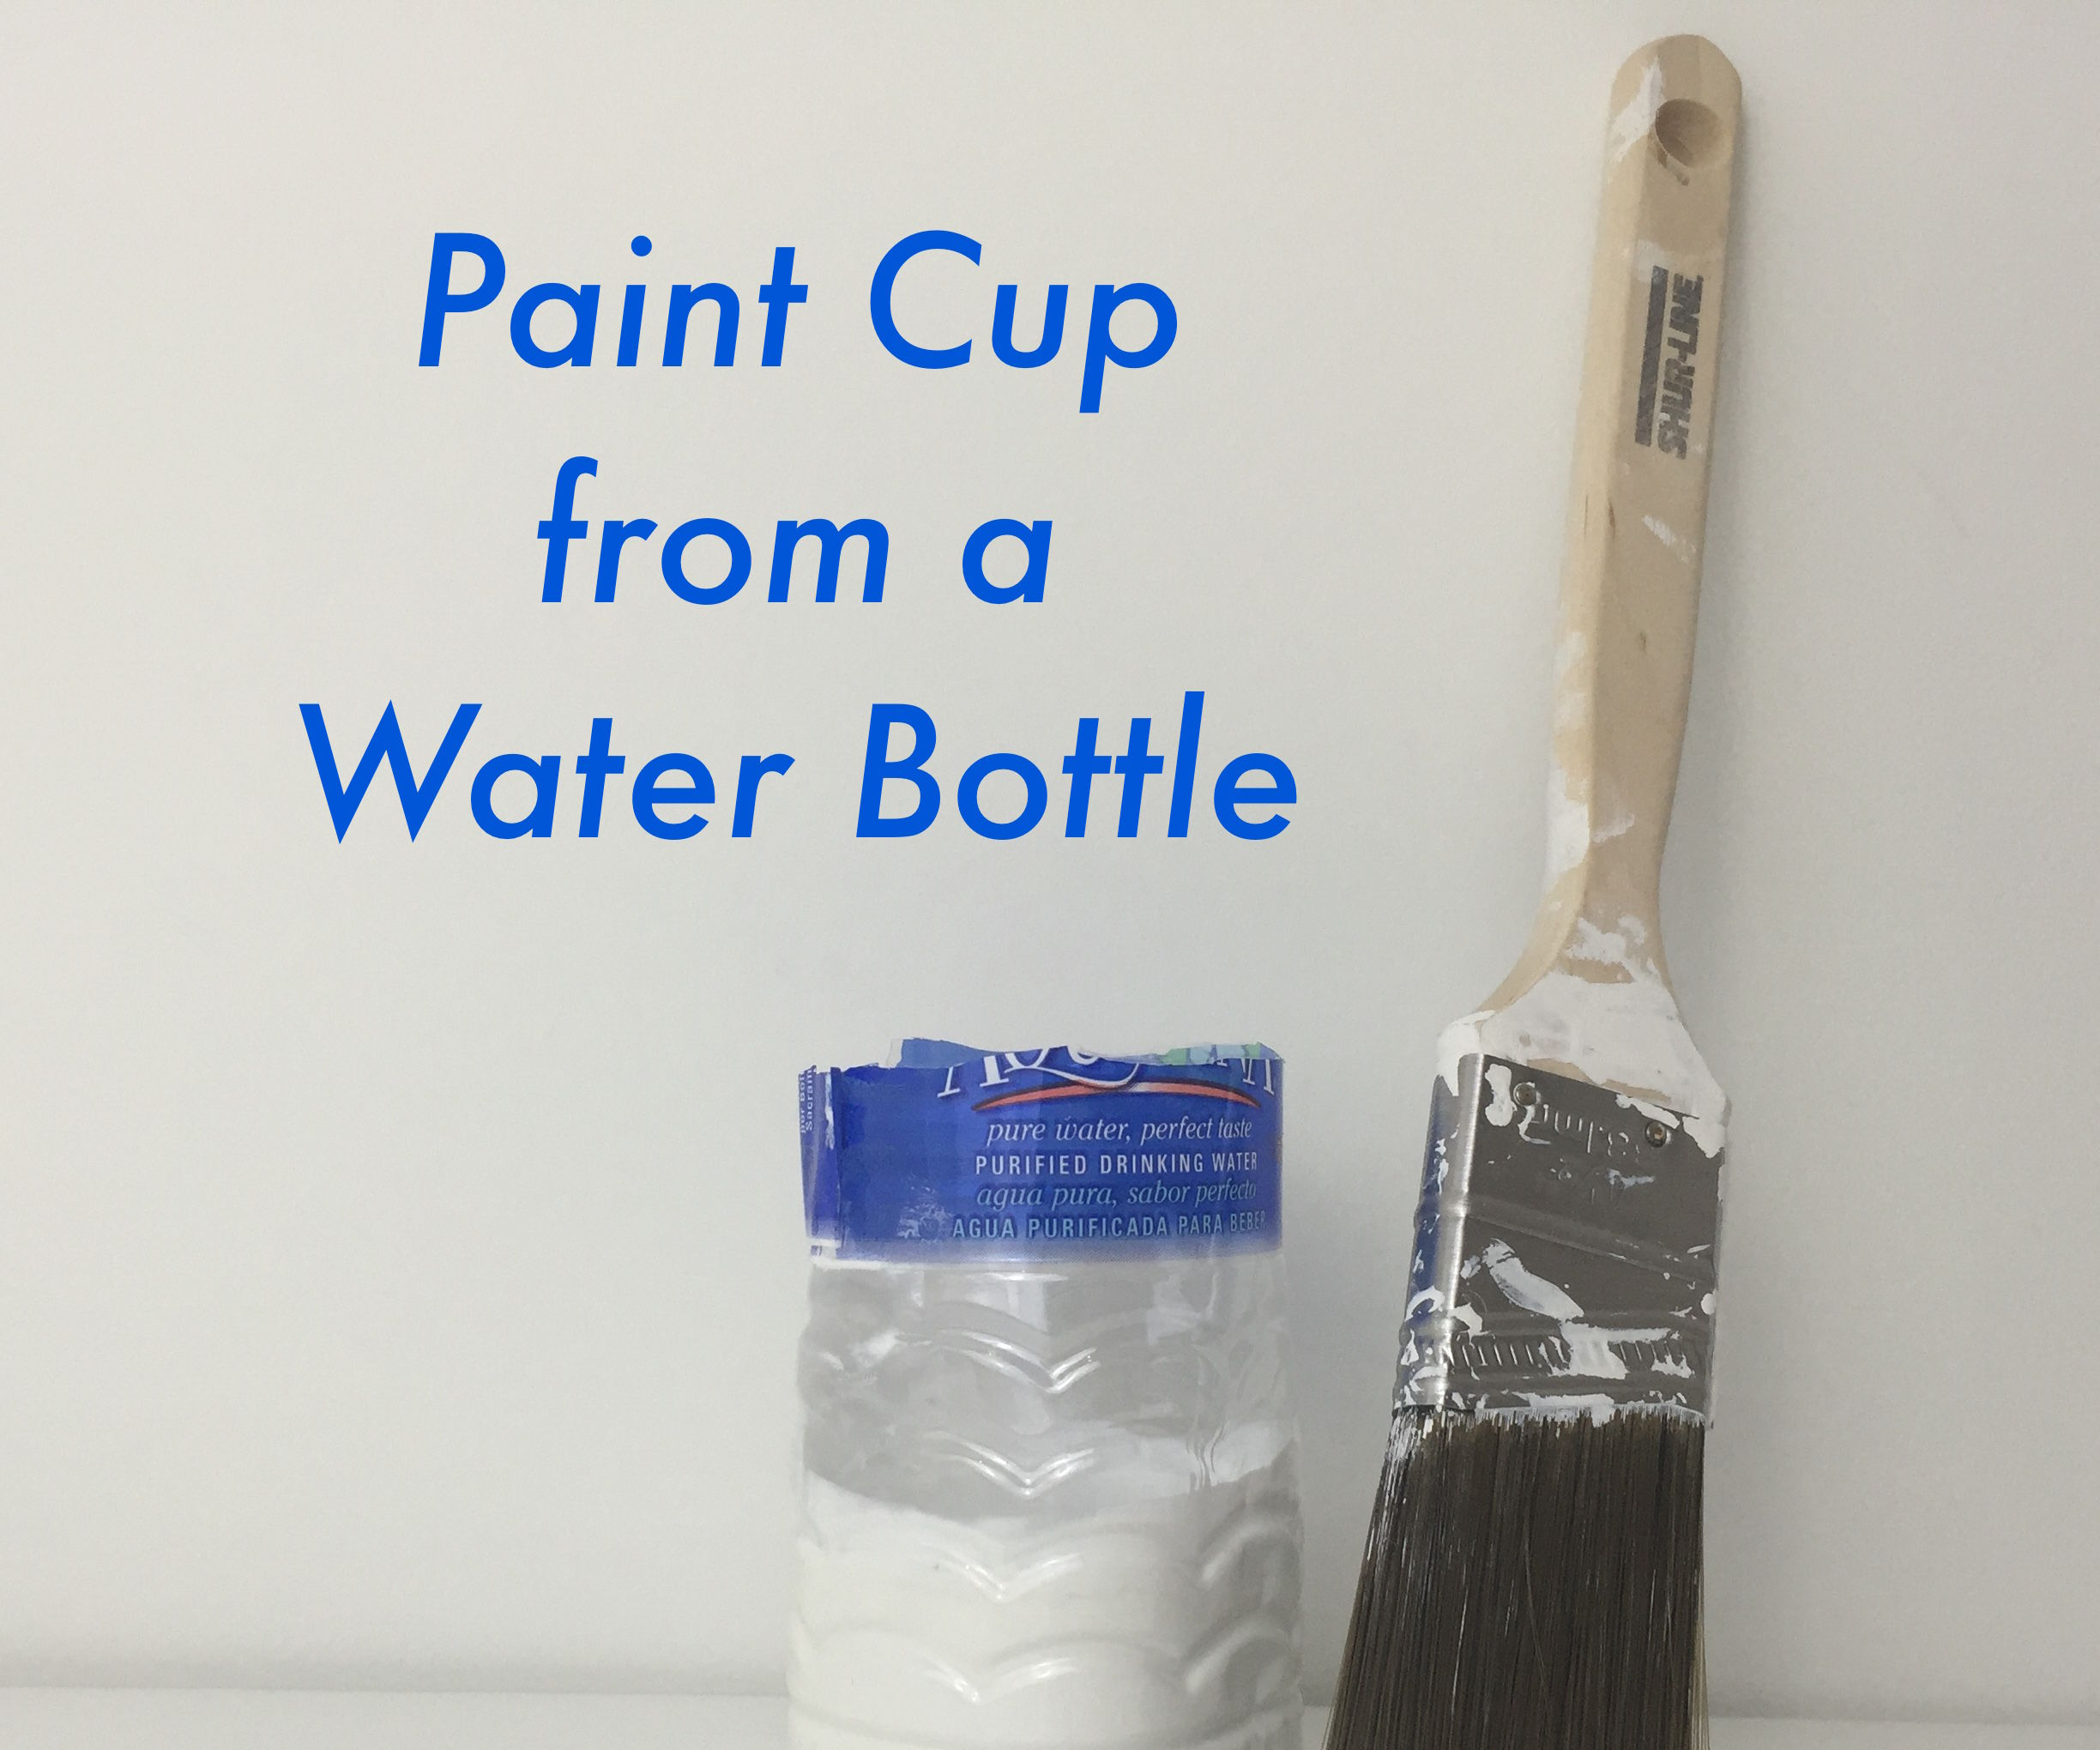 Handy Tip #4: Paint Cup From a Water Bottle